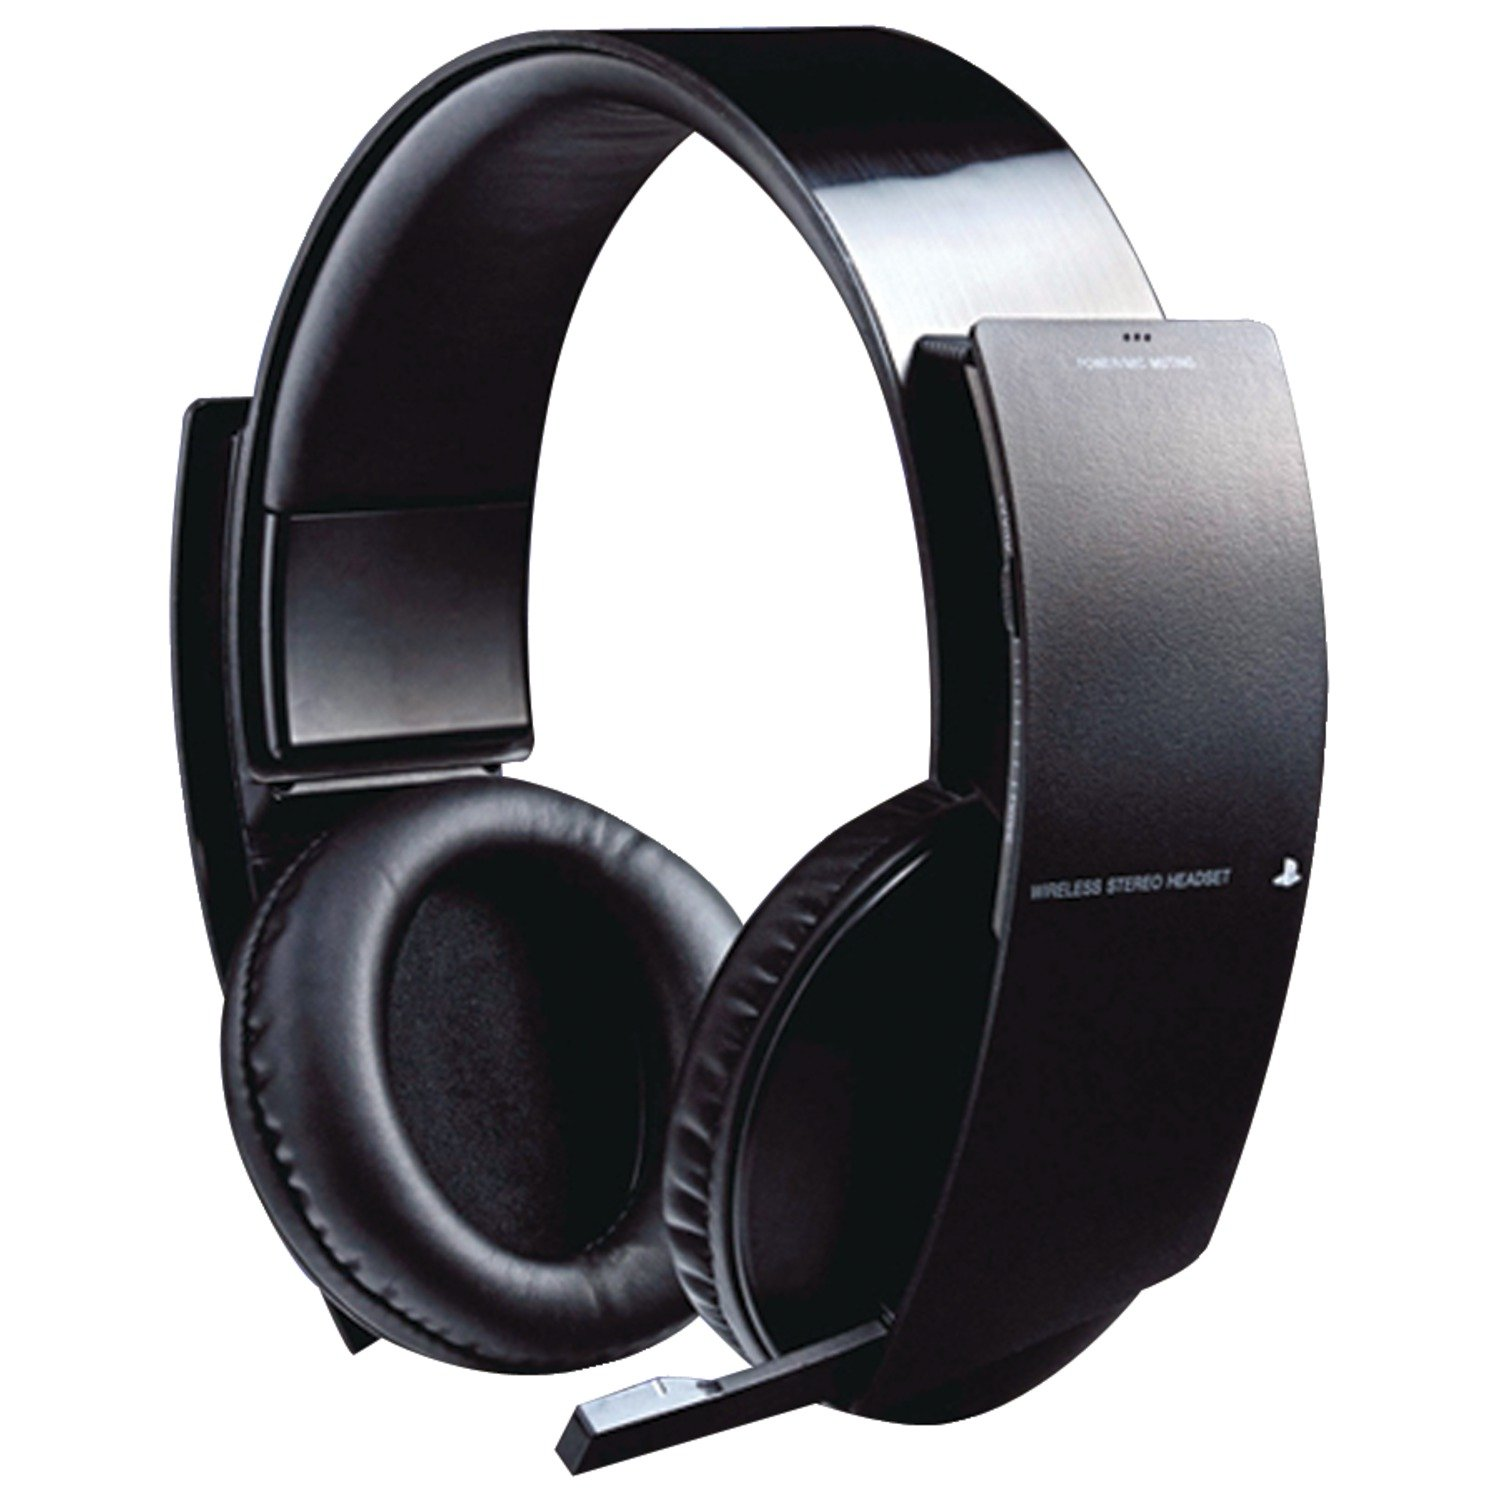 ps3 wireless headset Beste Bilder: